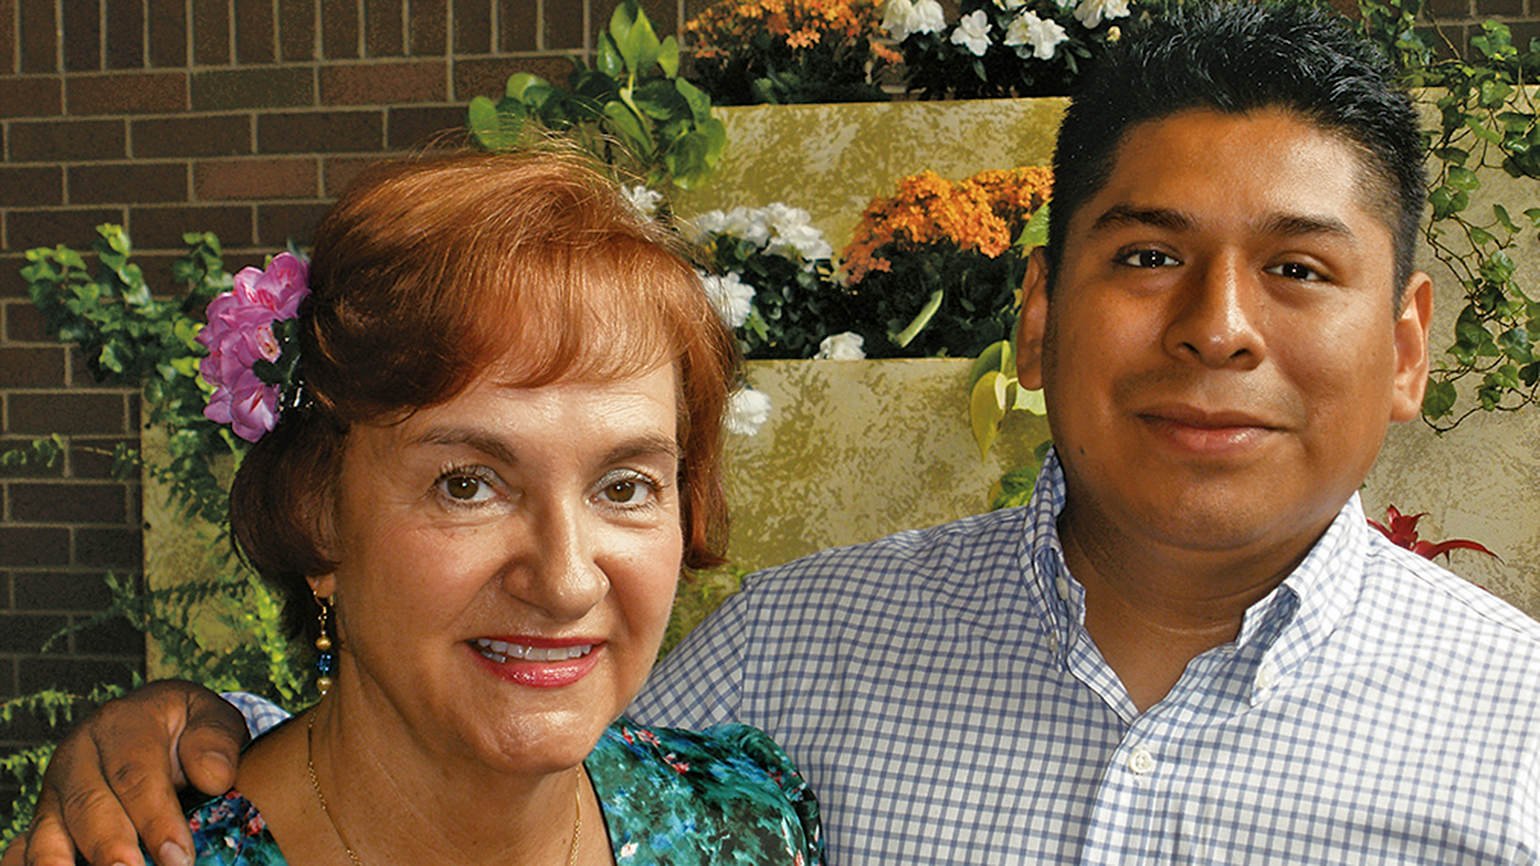 Rosemary and Juan at St. Raphael's, where she first heard about the ESL program.